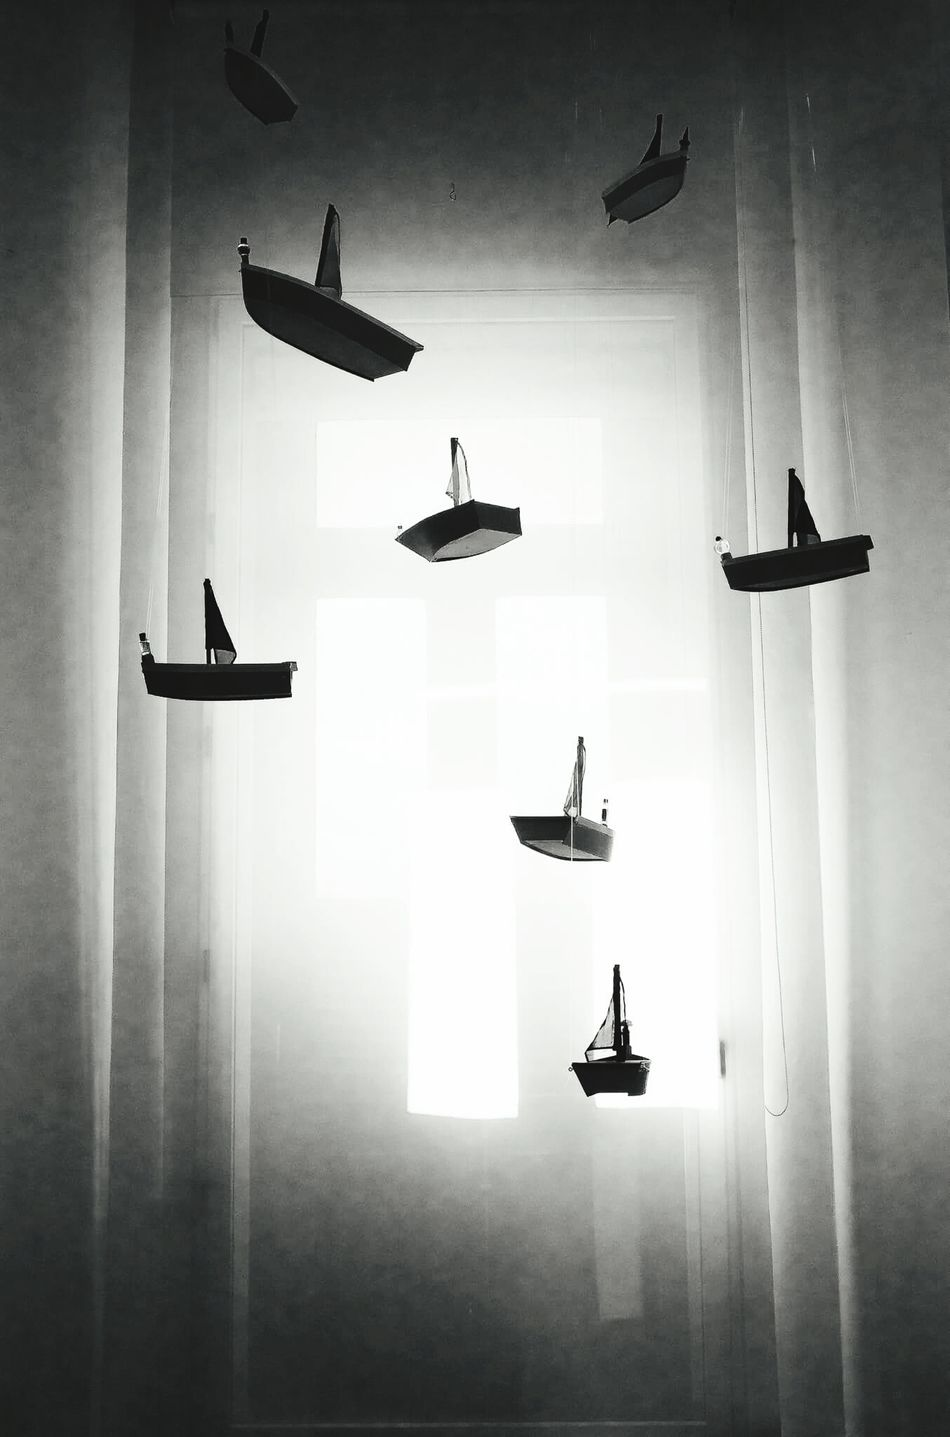 Silhouette Indoors  Surrealism Blck And White